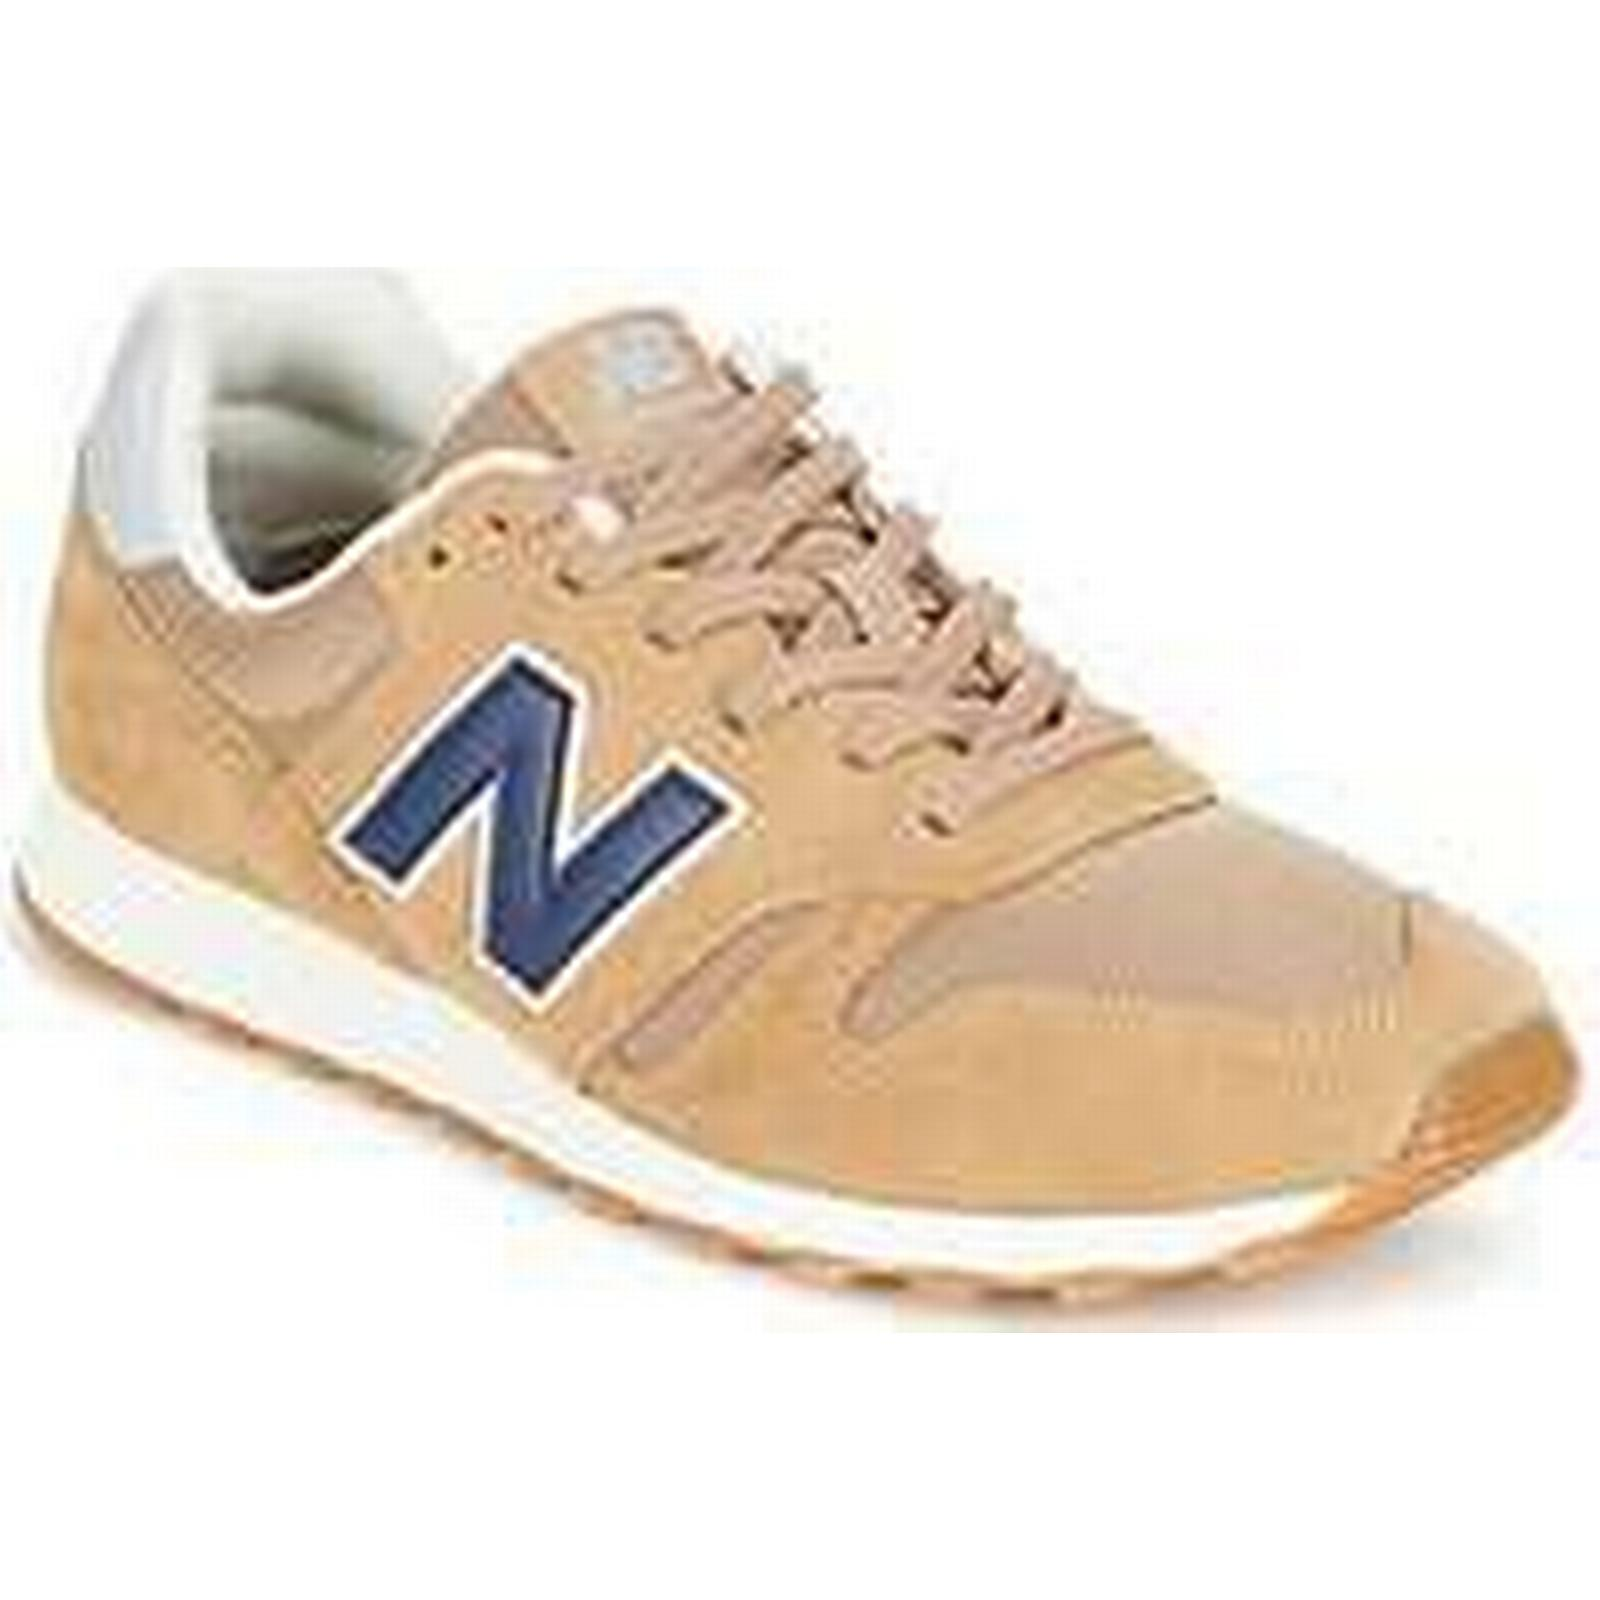 Spartoo.co.uk Shoes New Balance ML373 men's Shoes Spartoo.co.uk (Trainers) in Beige a02492